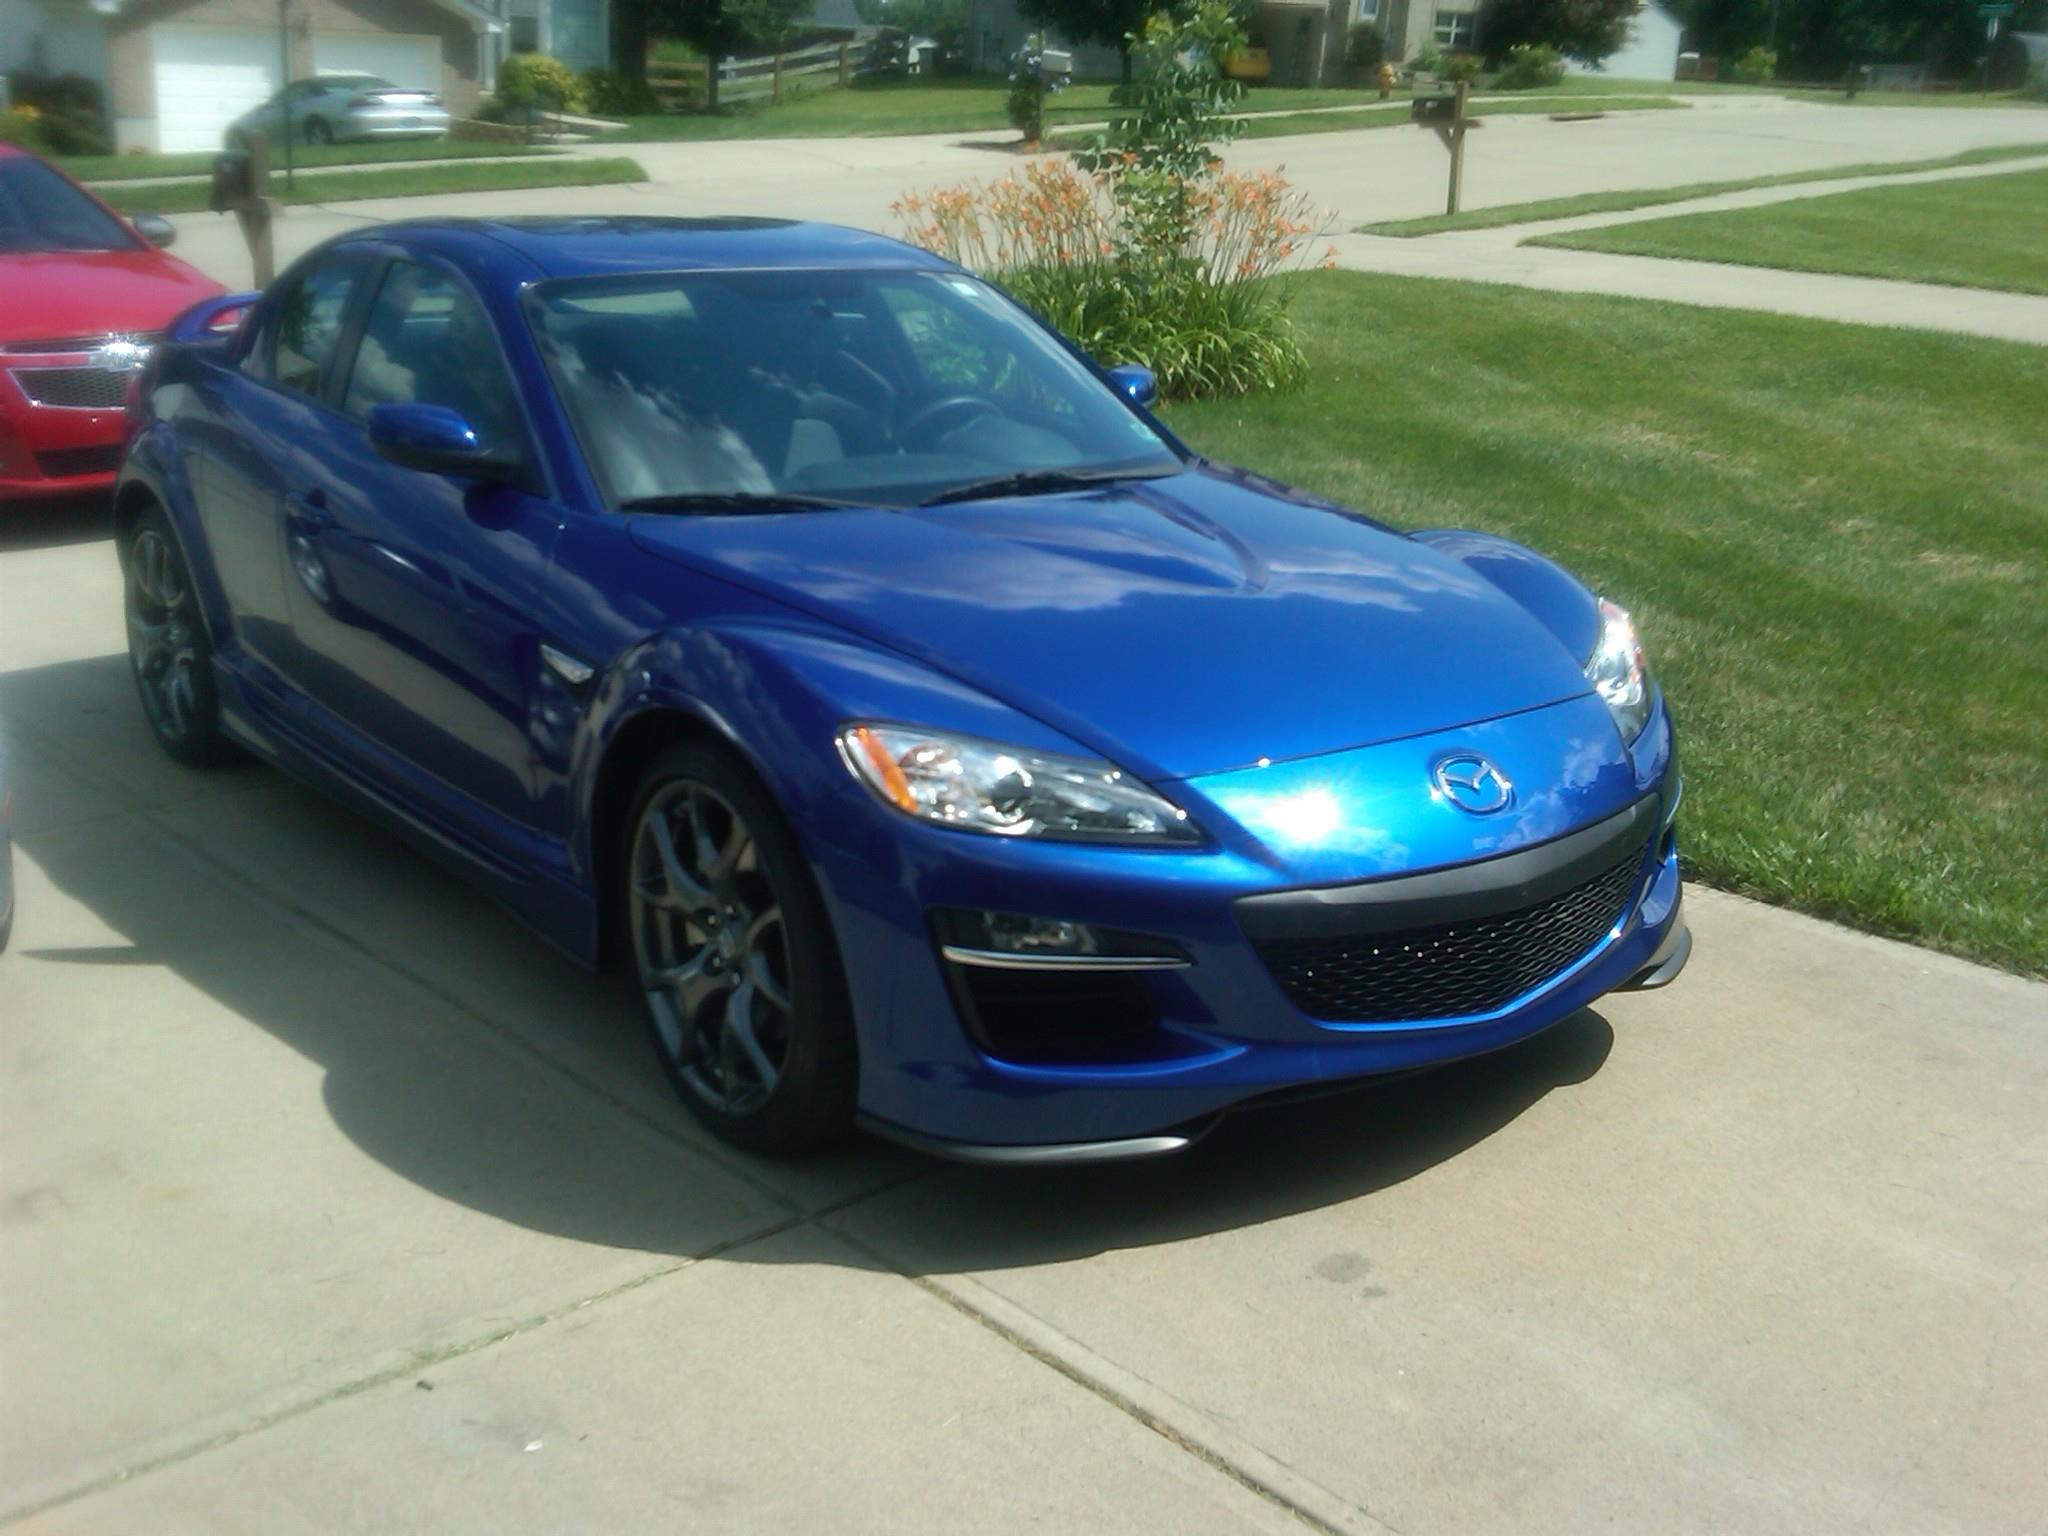 Mazda RX-8 Gets Treated to Paint Protection Film